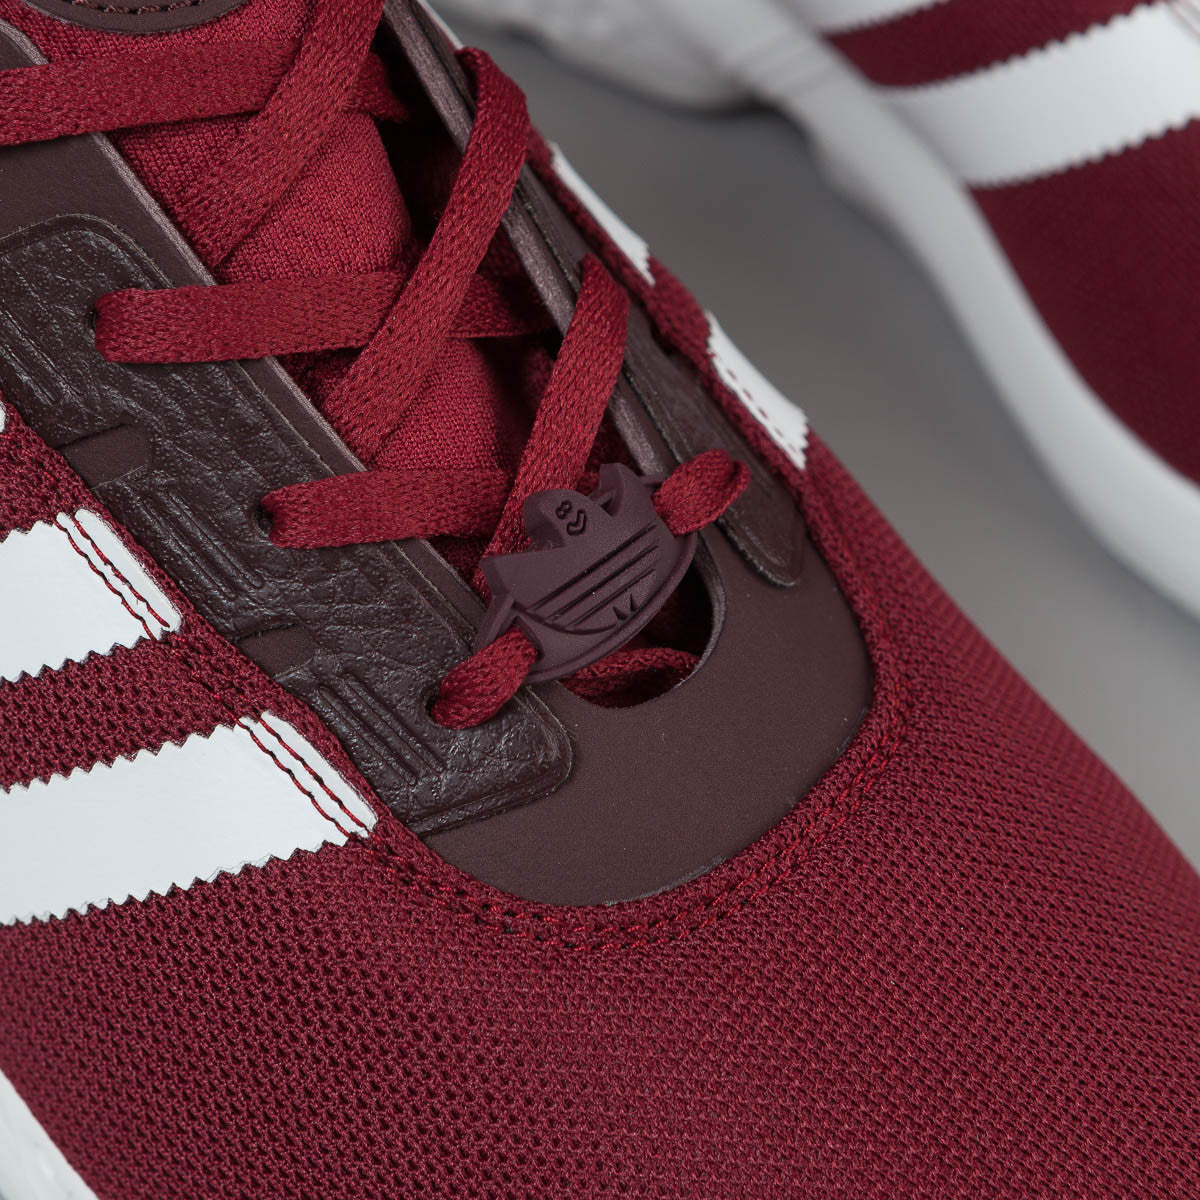 Adidas ZX Gonz Shoes - Burgundy / FTW White / NGT Red